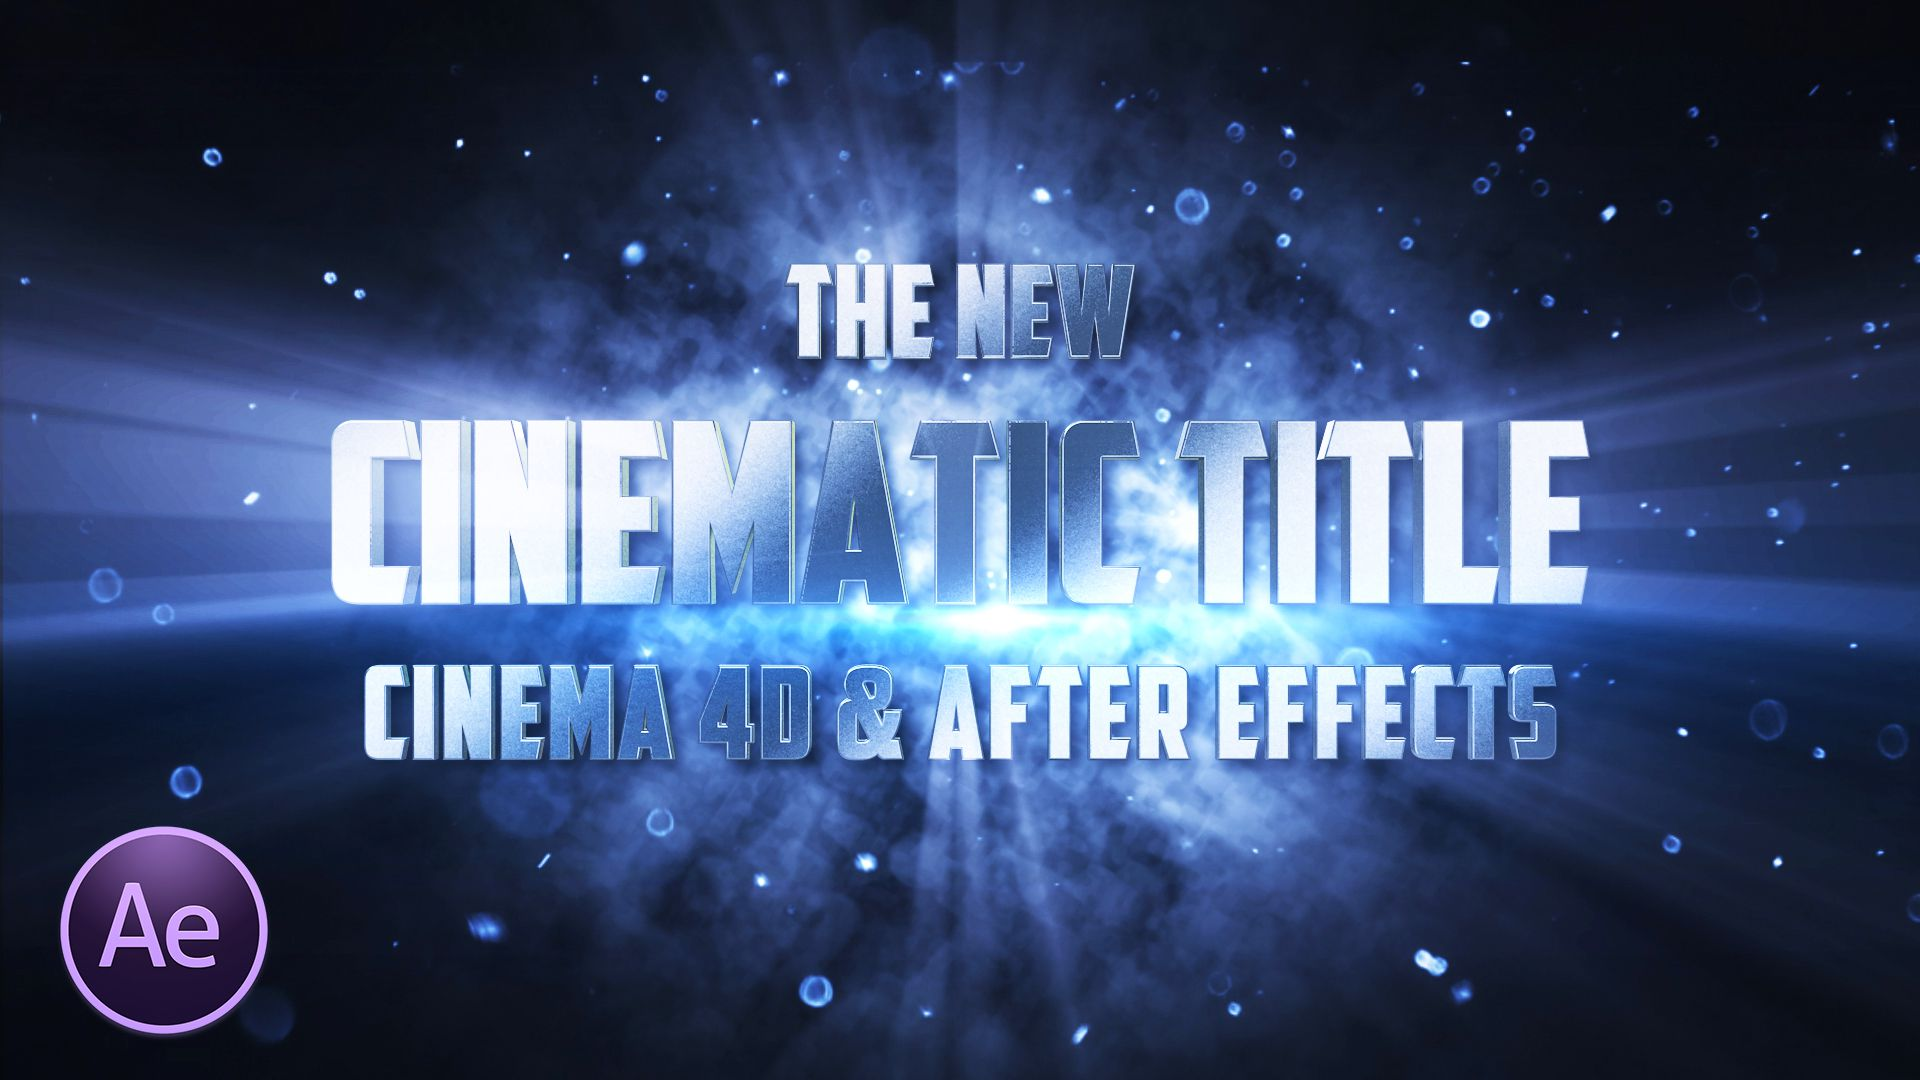 007 Awful After Effect Template Free Download Picture  Downloads Logo Intro Birthday SlideshowFull